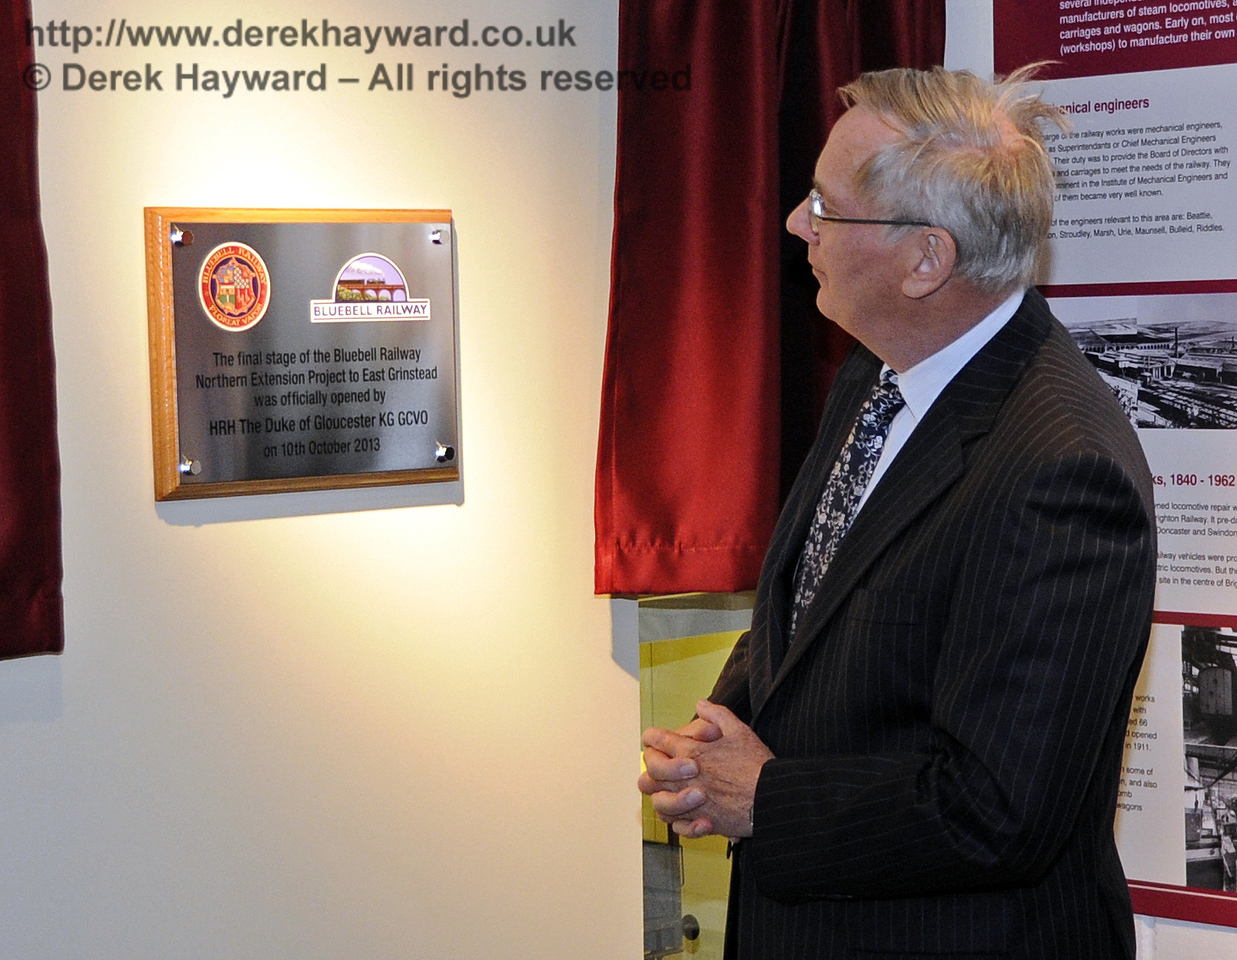 The Duke of Gloucester, KG, GCVO, is invited to unveil a plaque to mark his visit to the Bluebell Railway.  10.10.2013  8290